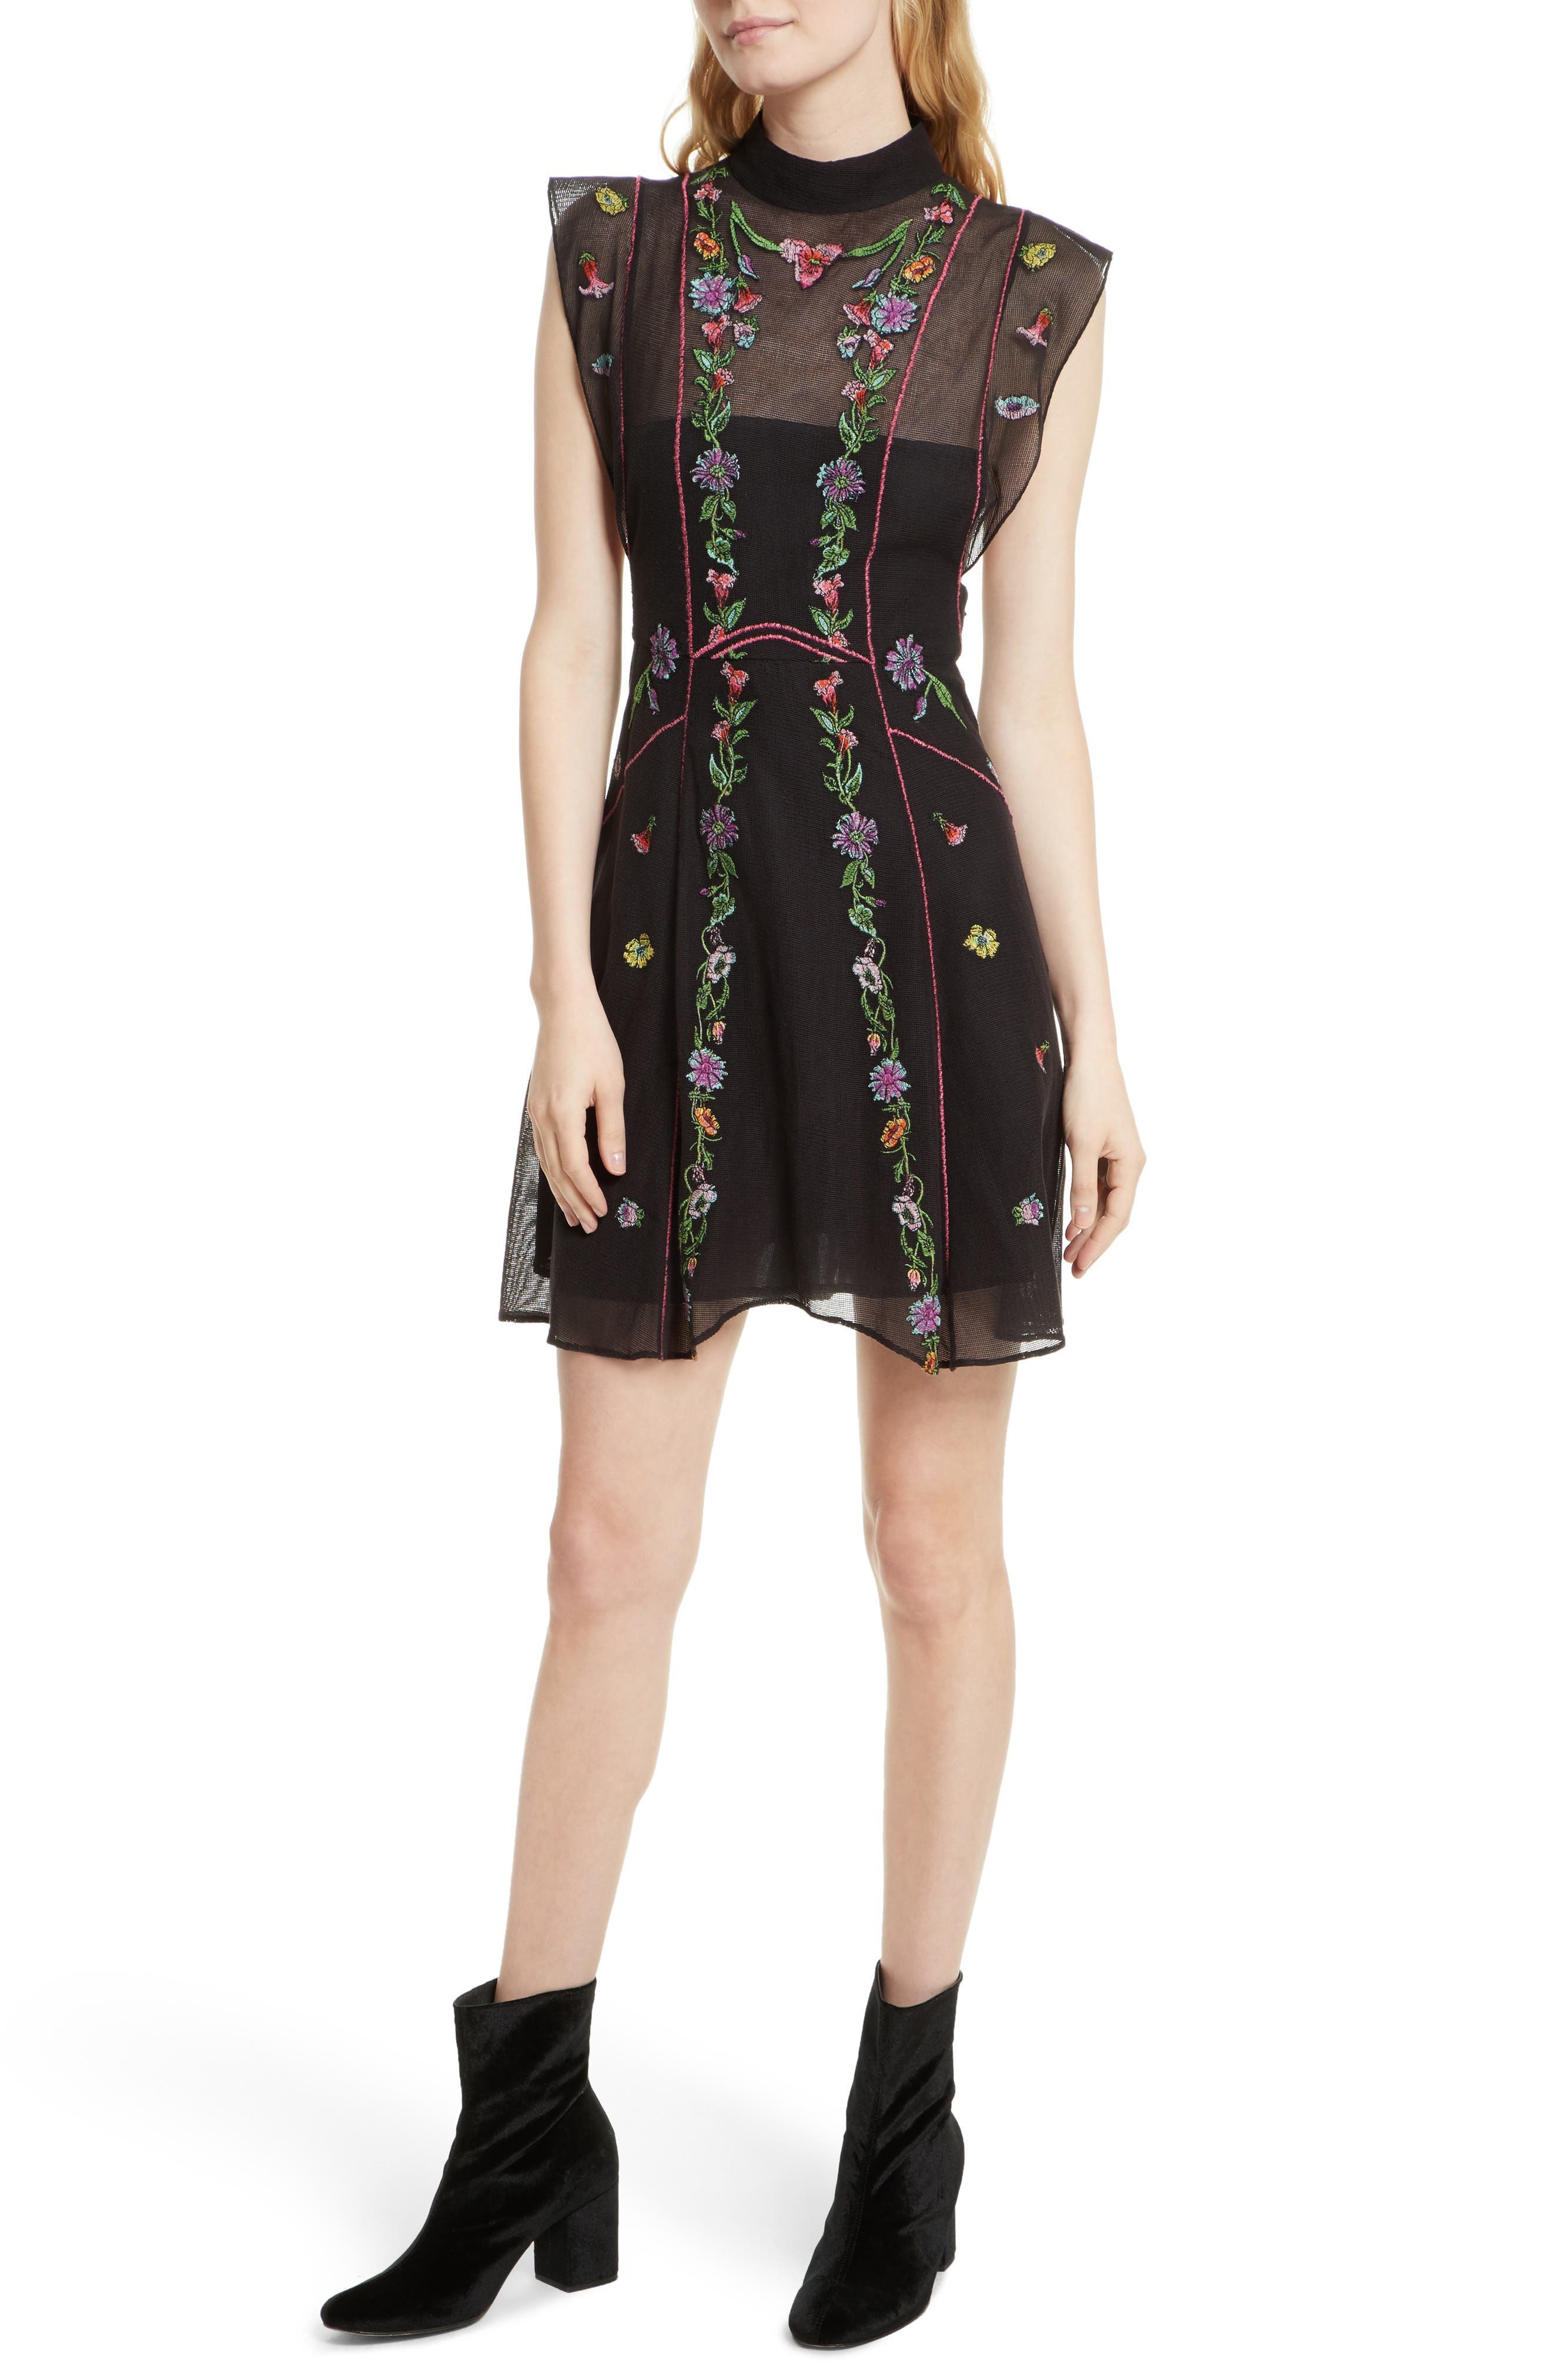 Free People Riviera Embroidered Minidress